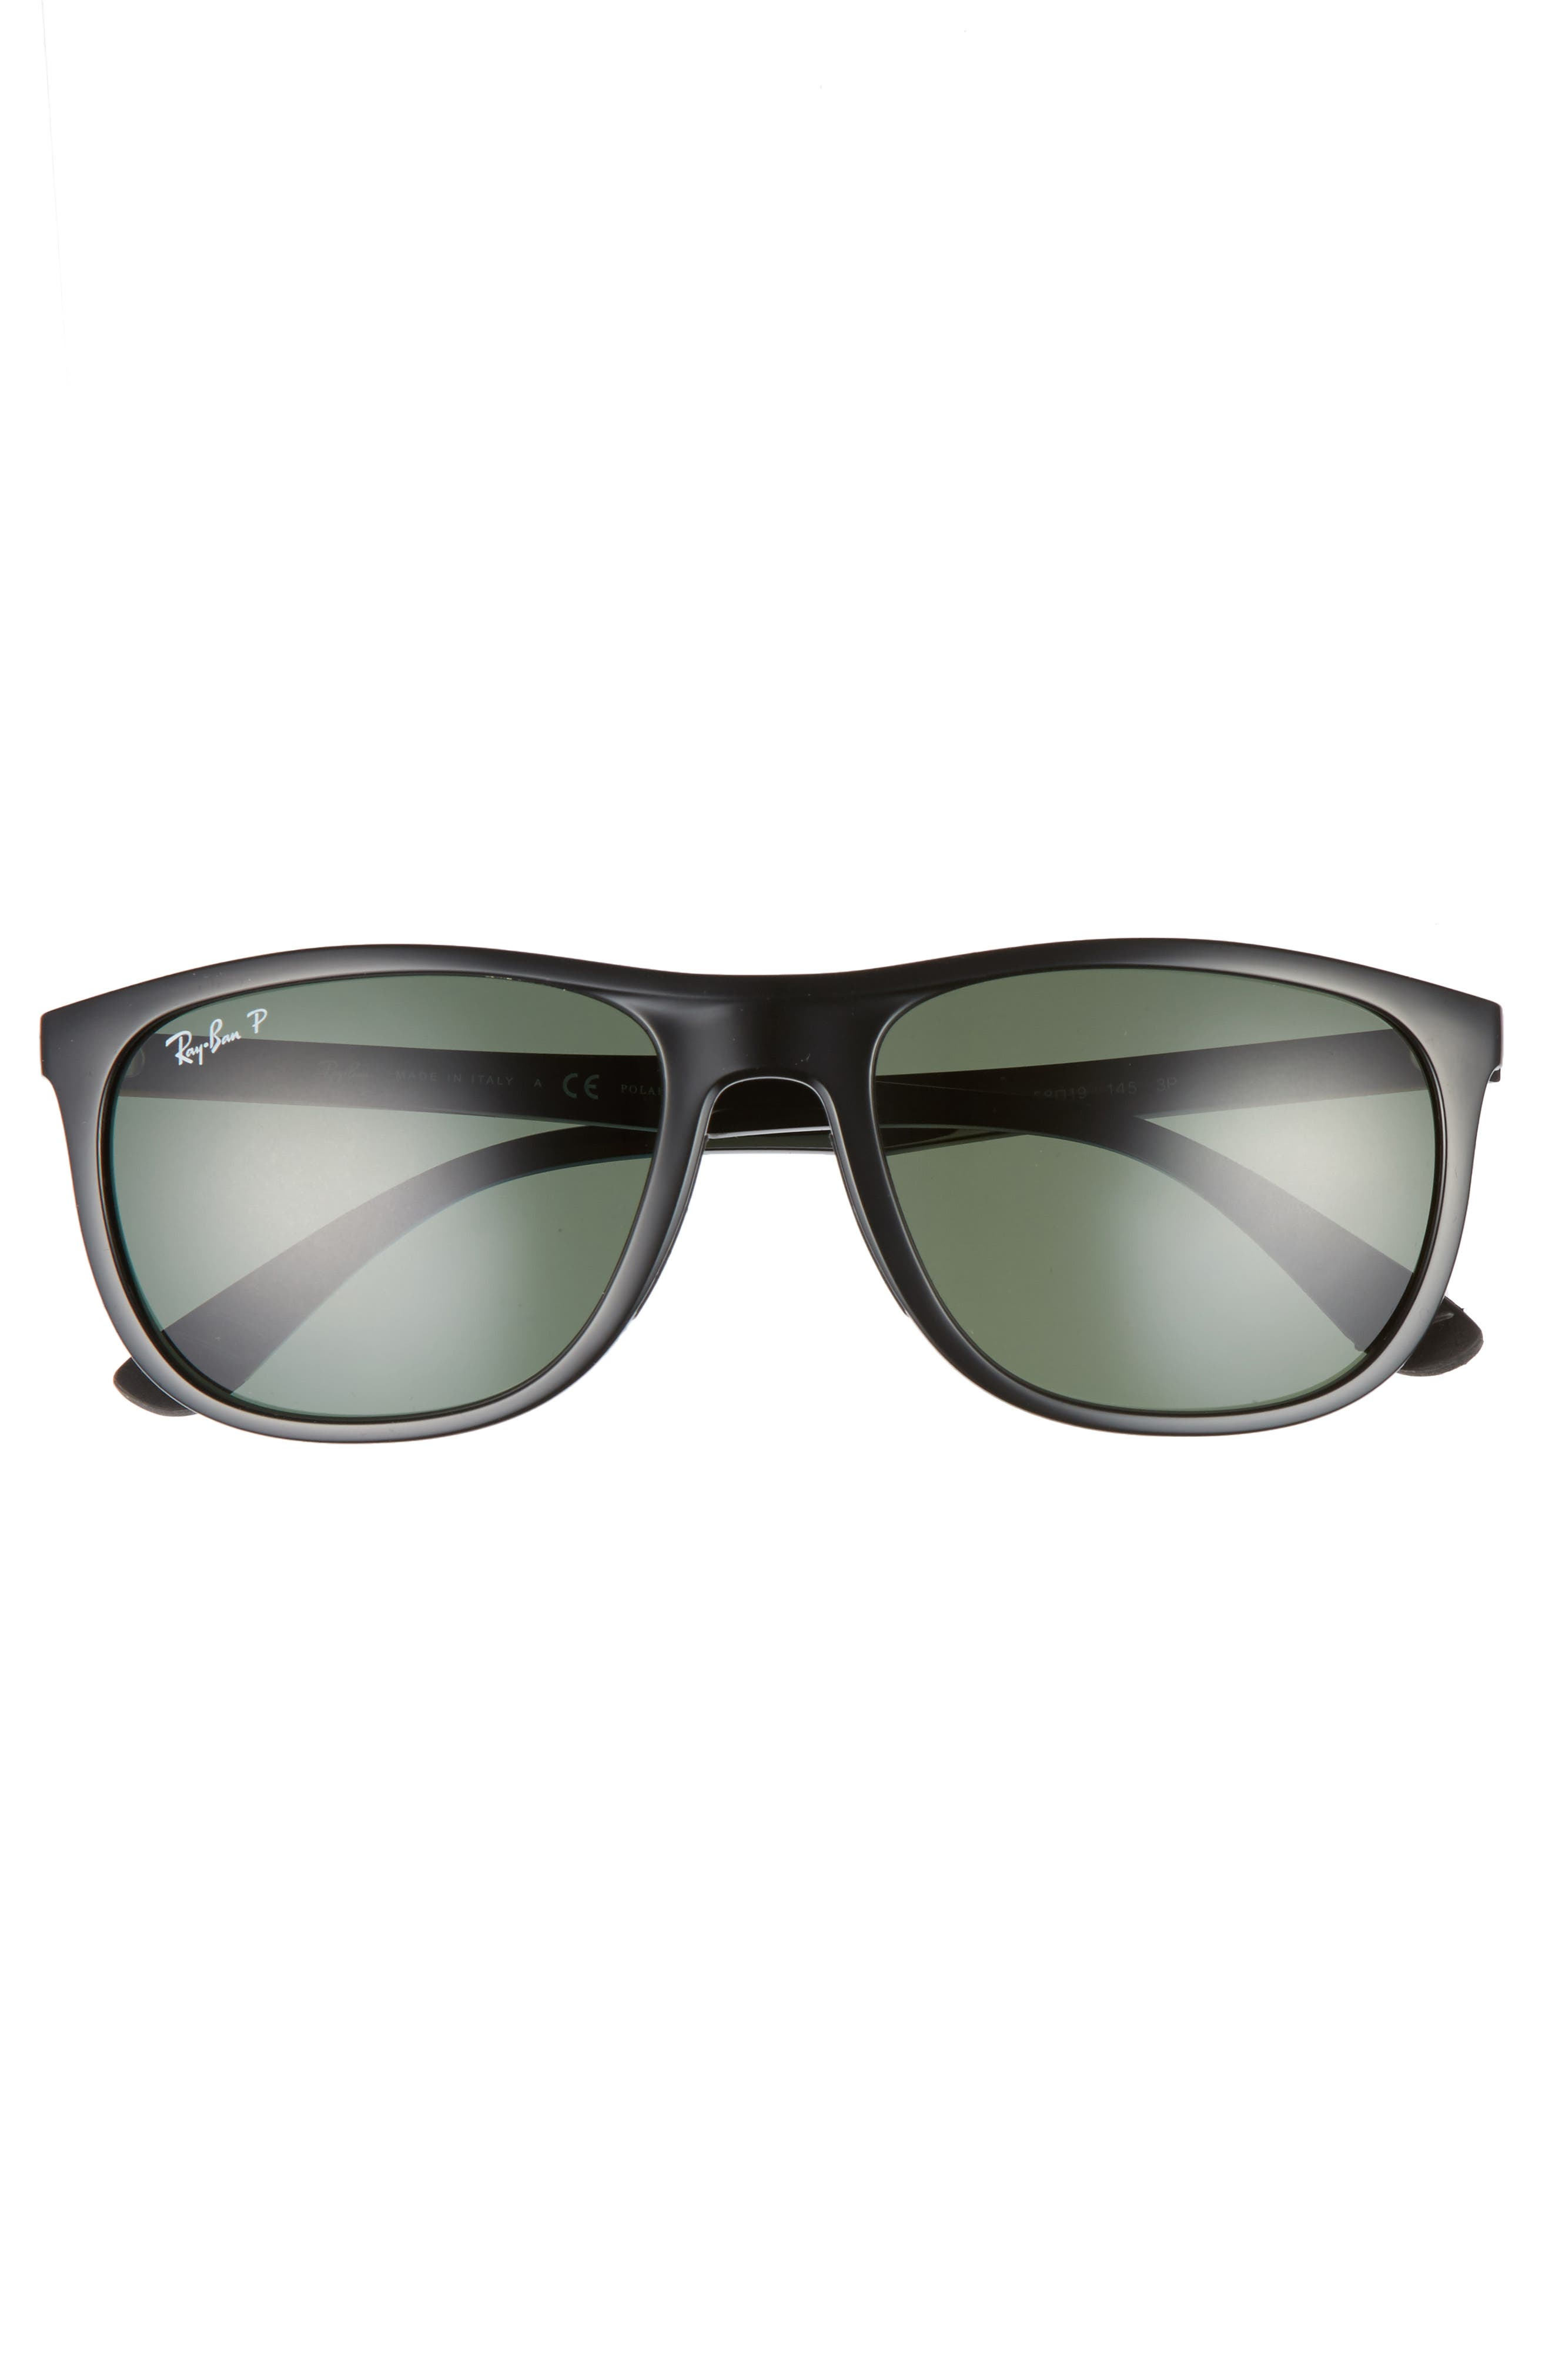 Active Lifestyle 58mm Sunglasses,                             Alternate thumbnail 2, color,                             BLACK POLARIZED